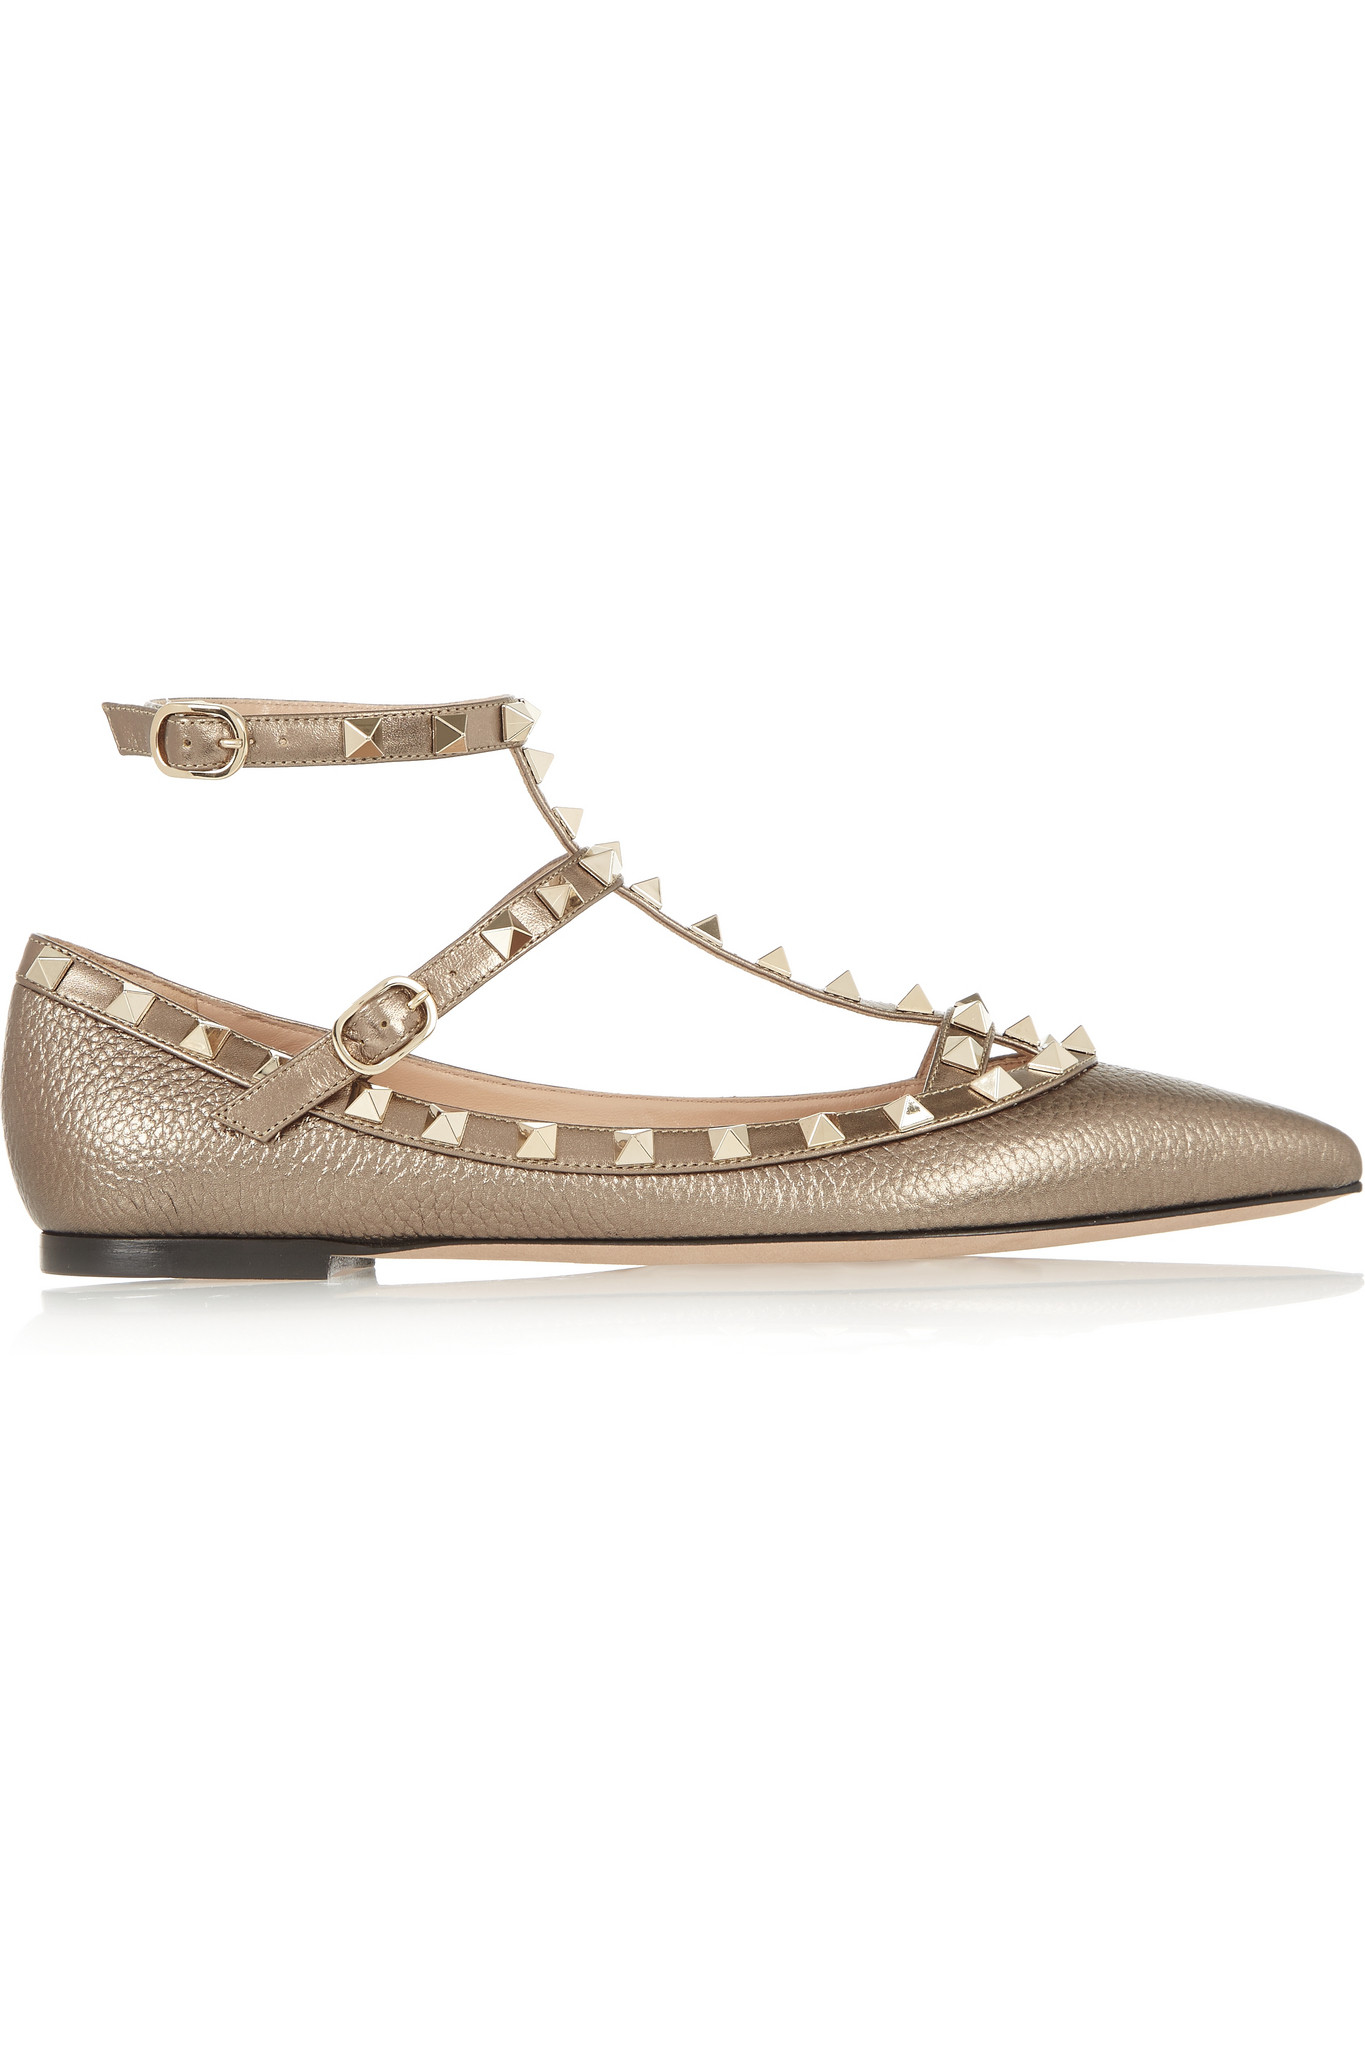 7a6ca83d950e Valentino Rockstud Metallic Textured-leather Point-toe Flats in ...